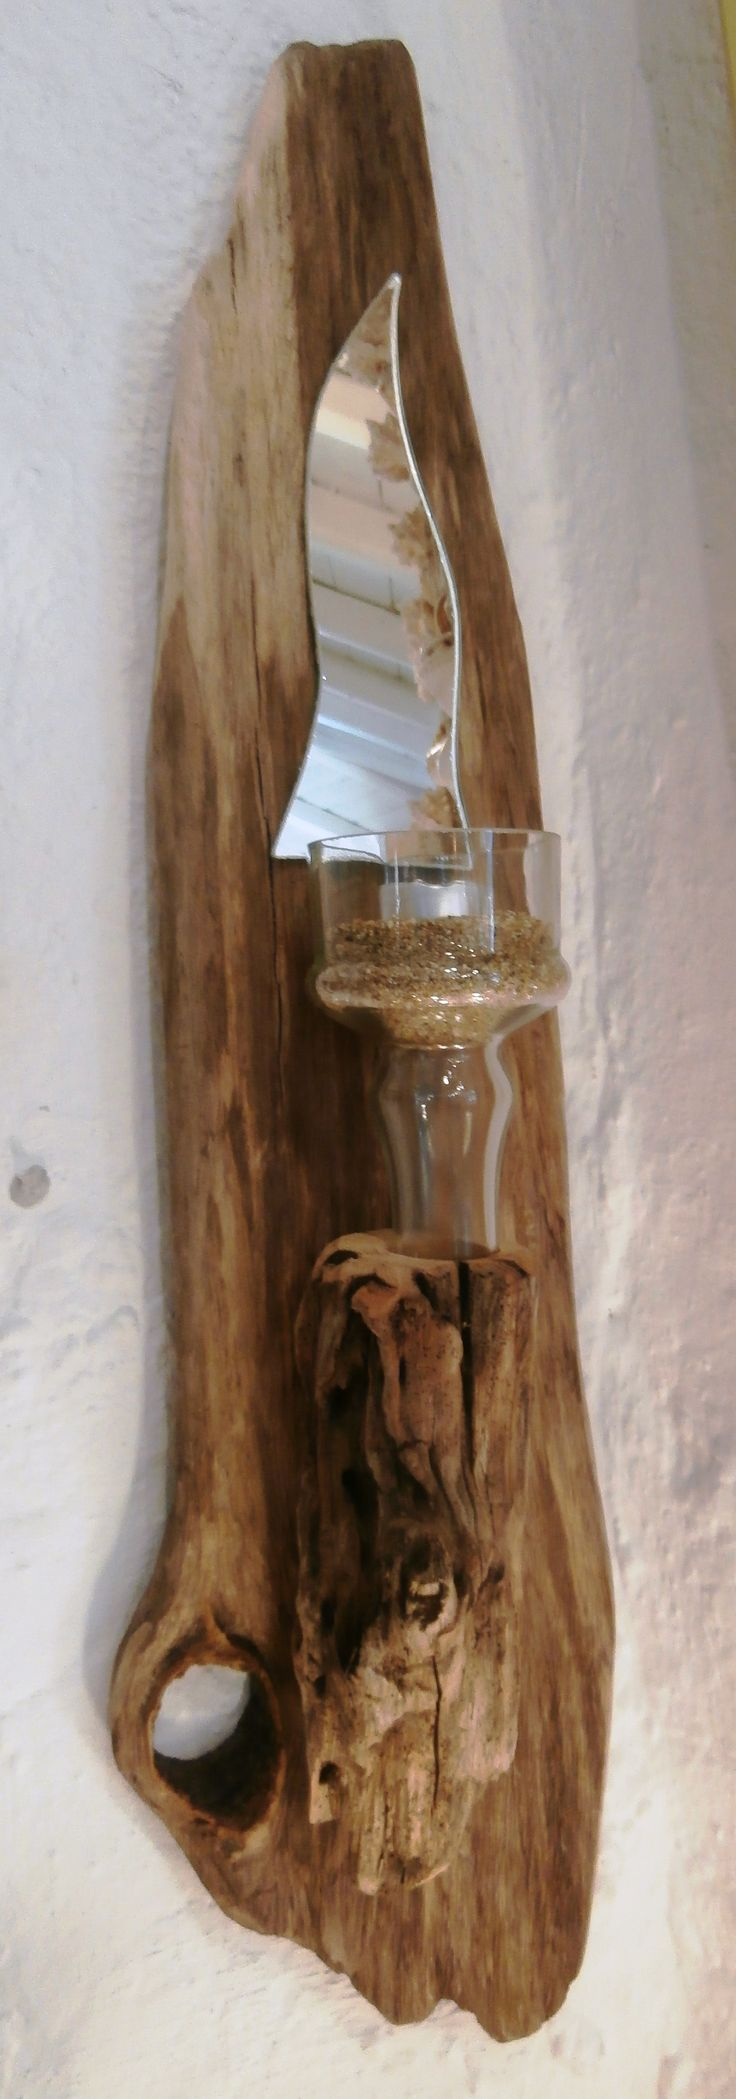 Driftwood wall sconce featuring the neck of a glass bottle, upturned to hold the tealight.